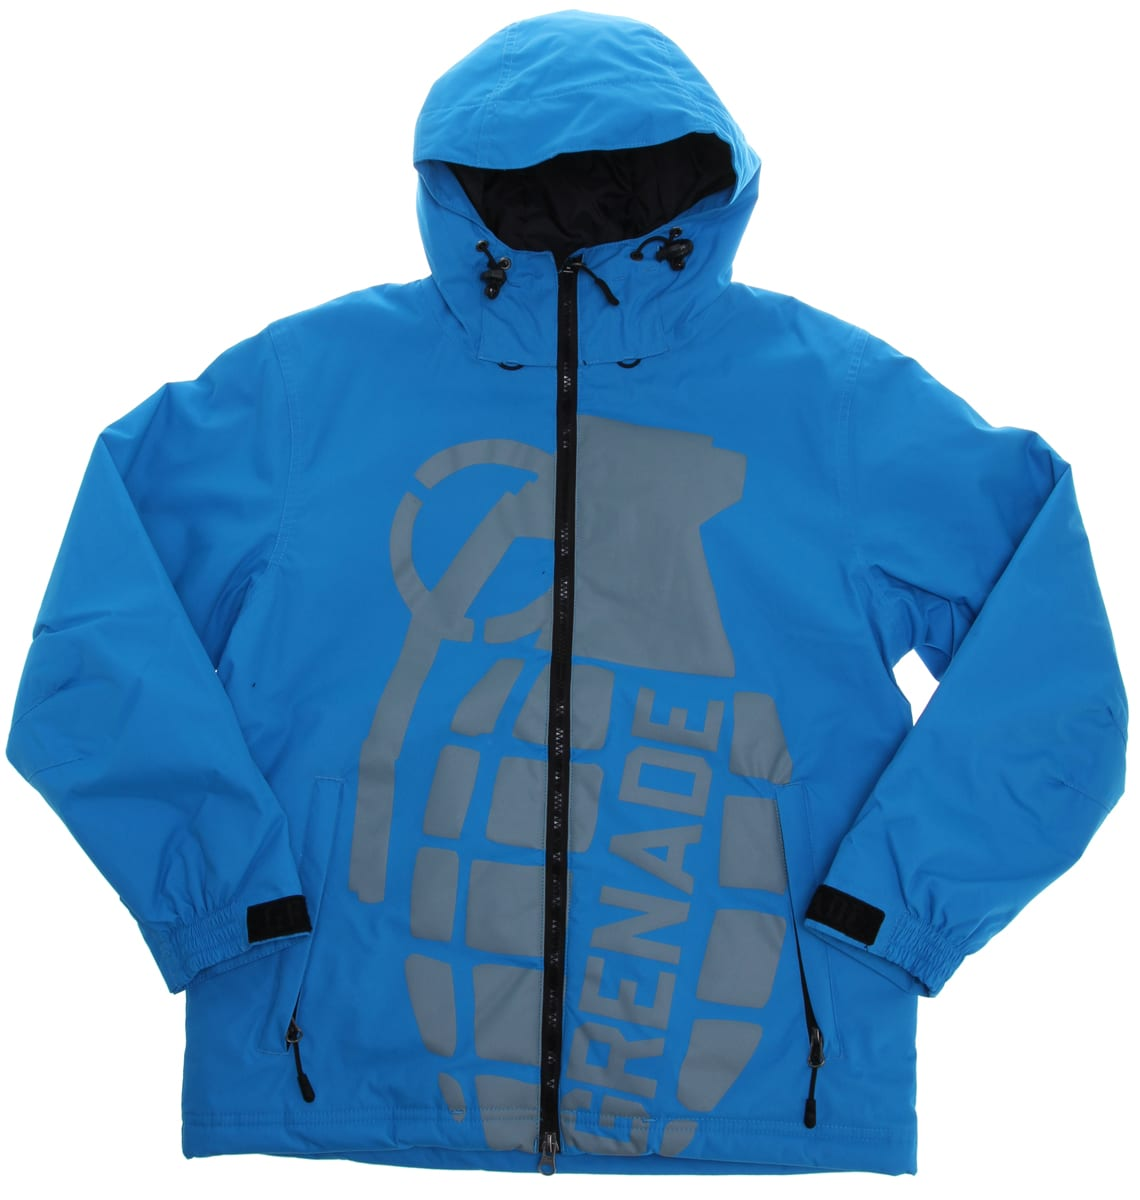 Shop for Grenade Exploiter Snowboard Jacket Blue - Kid's